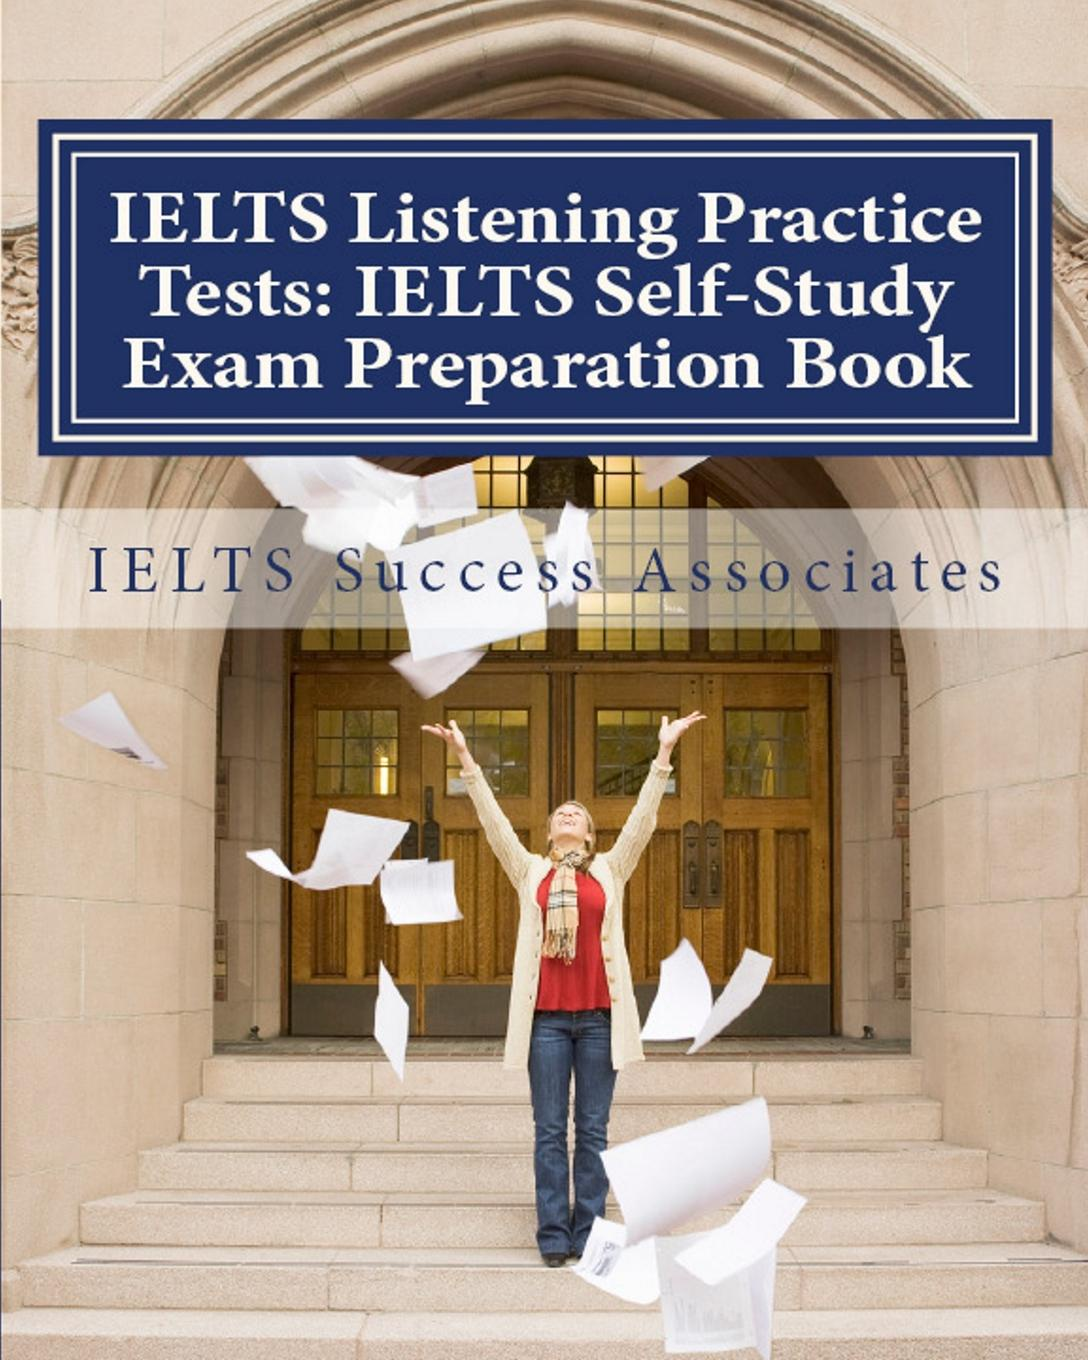 IELTS Success Associates IELTS Listening Practice Tests. IELTS Self-Study Exam Preparation Book for IELTS for Academic Purposes and General Training Modules focusing on ielts listening and speaking skills with answer key 4 cd